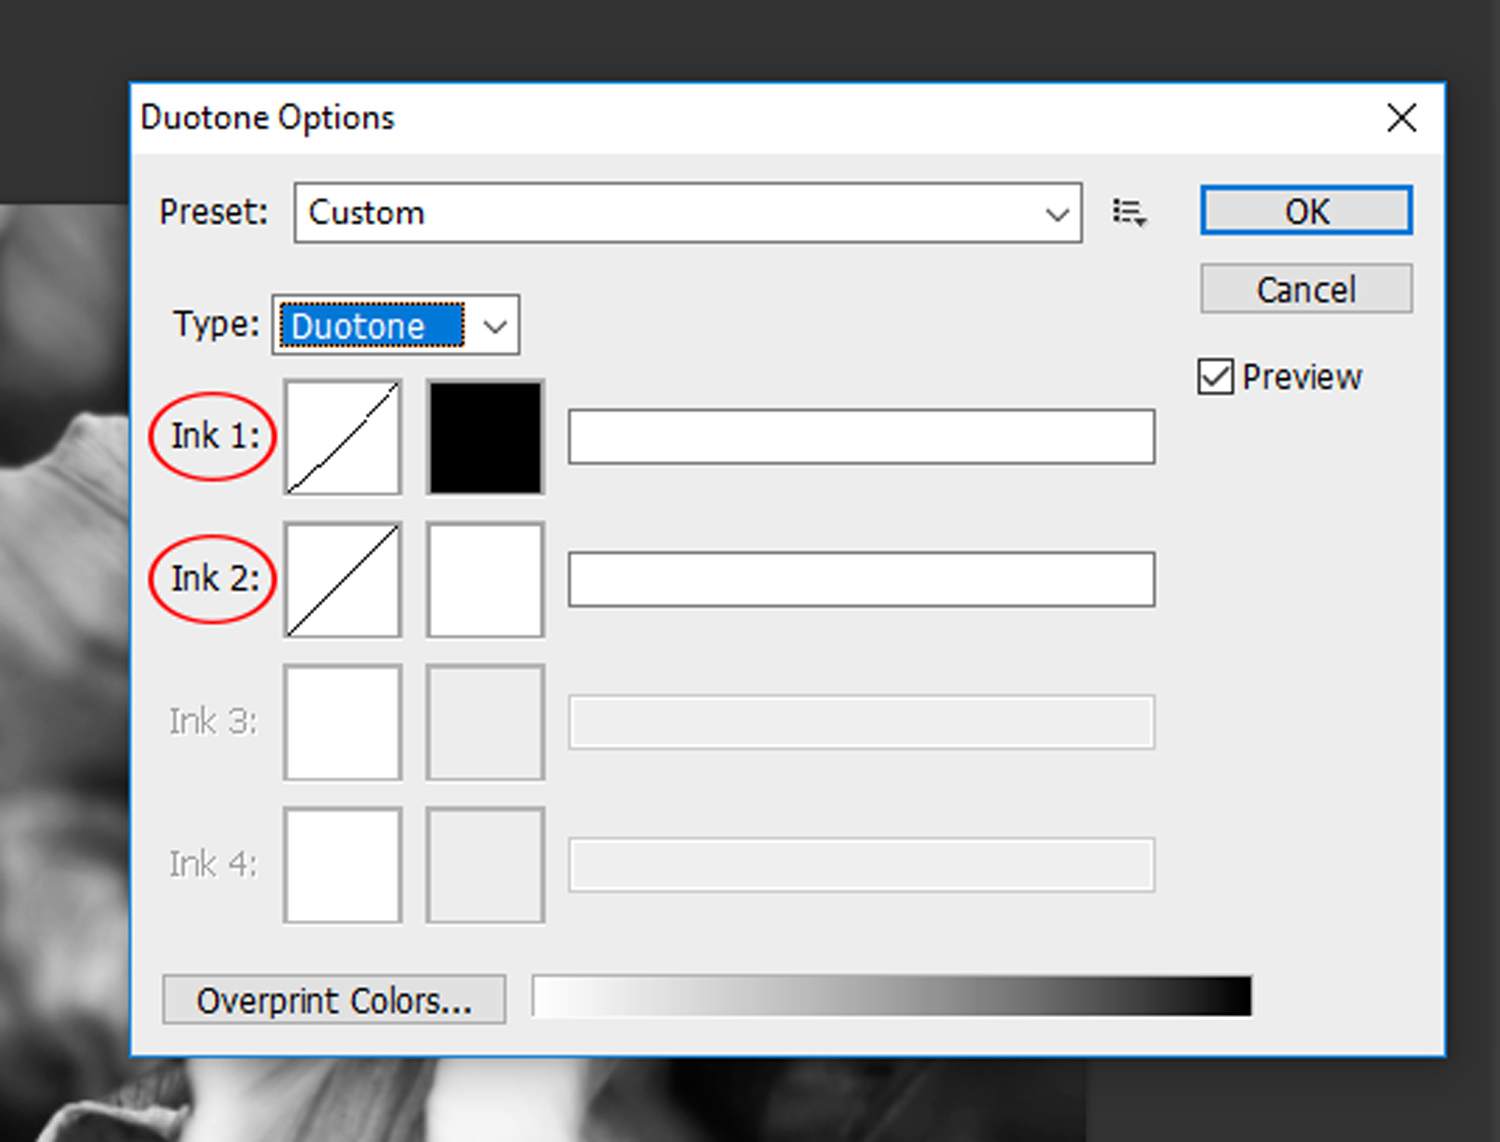 9 - How to Duotone a Photograph in Photoshop